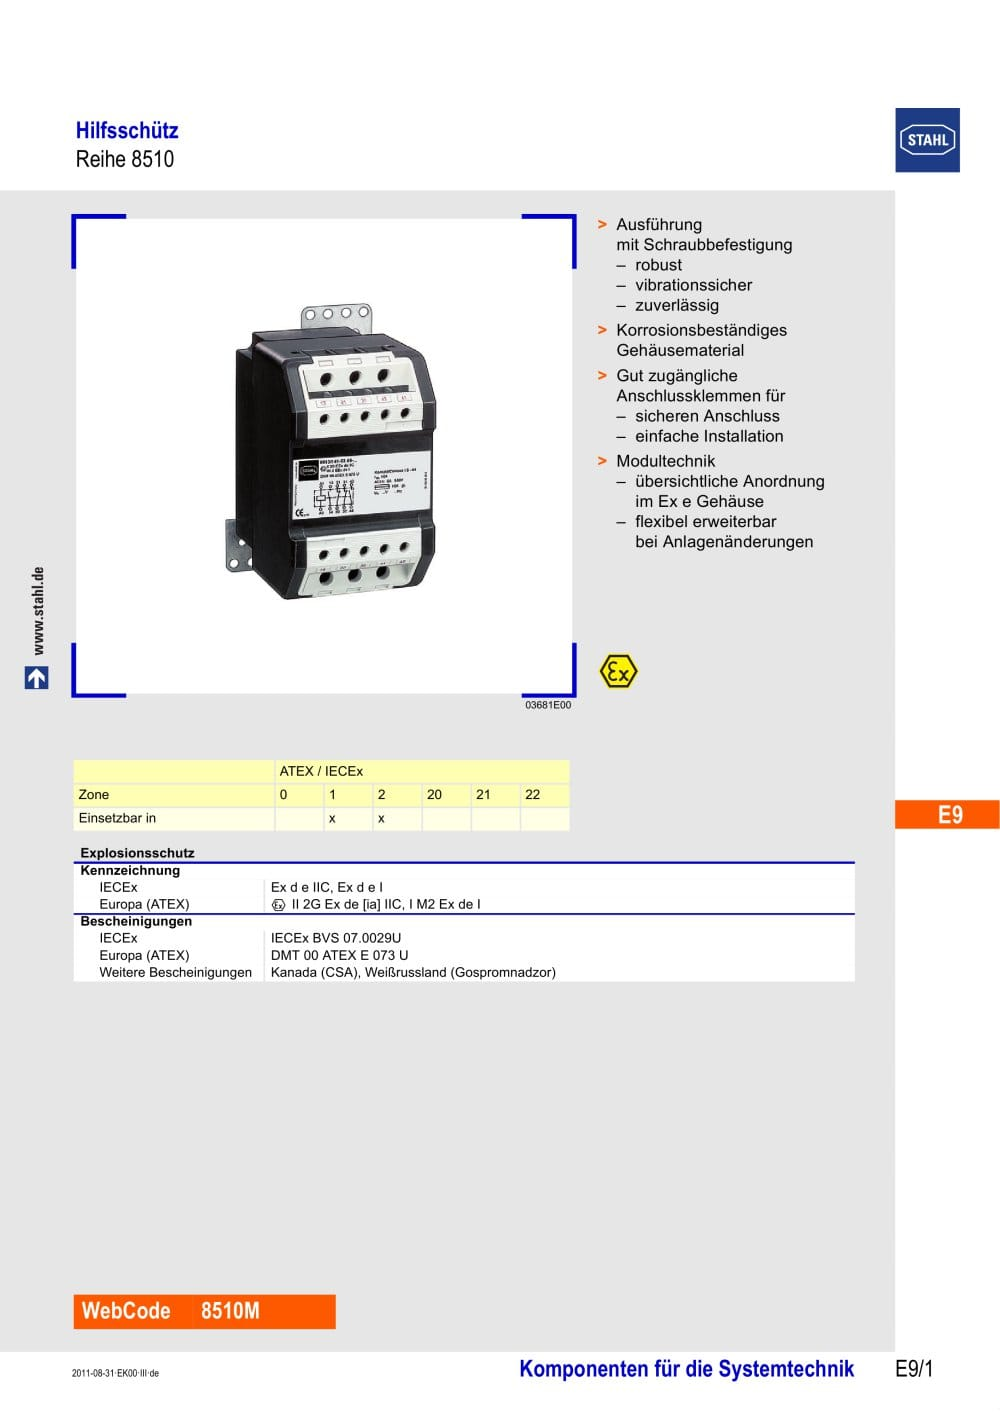 Contactor Relay Series 8510 - 1 / 5 Pages